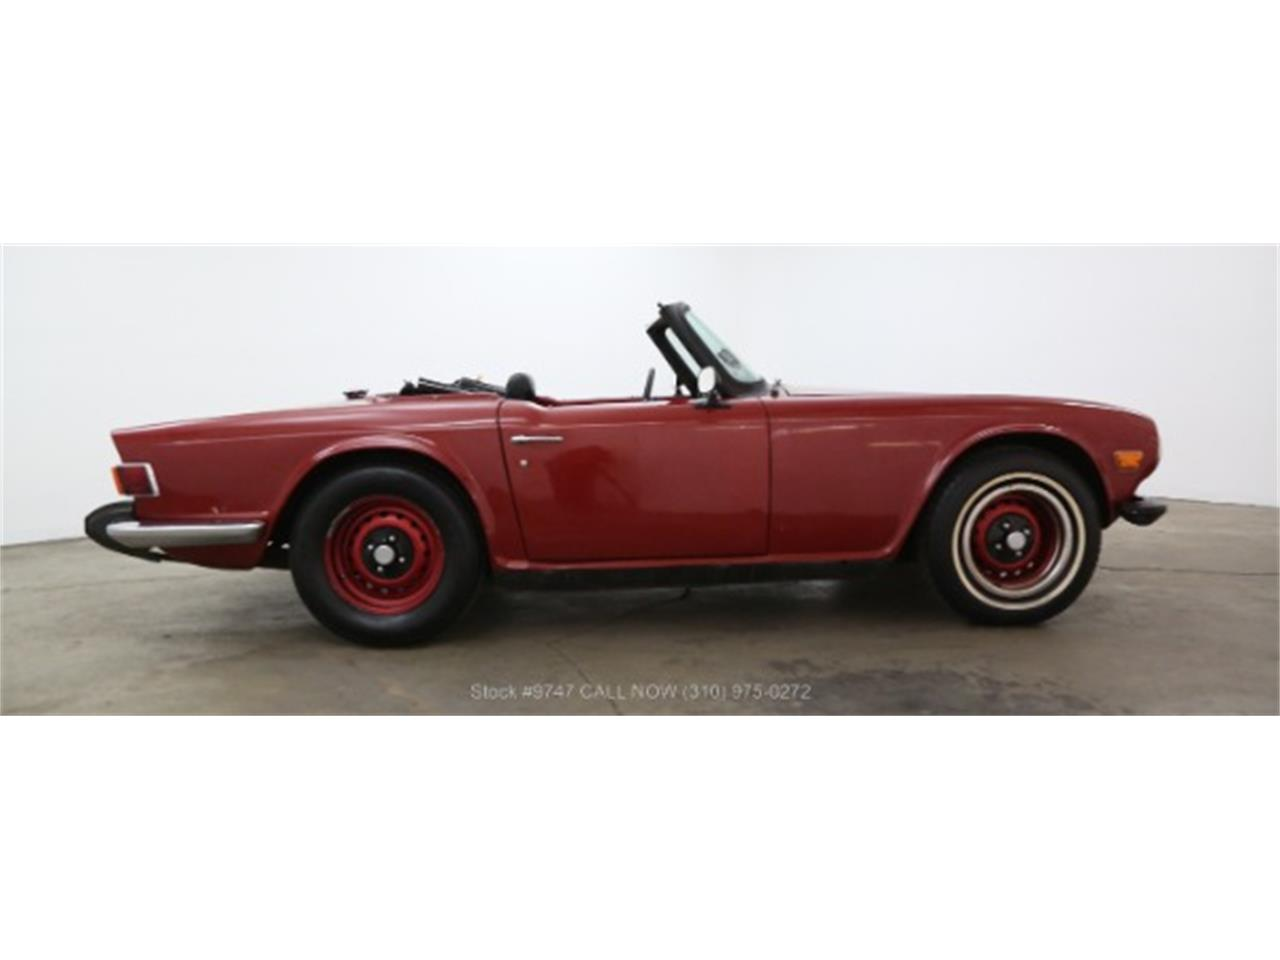 Large Picture of '73 Triumph TR6 located in California - $3,950.00 - QI3K